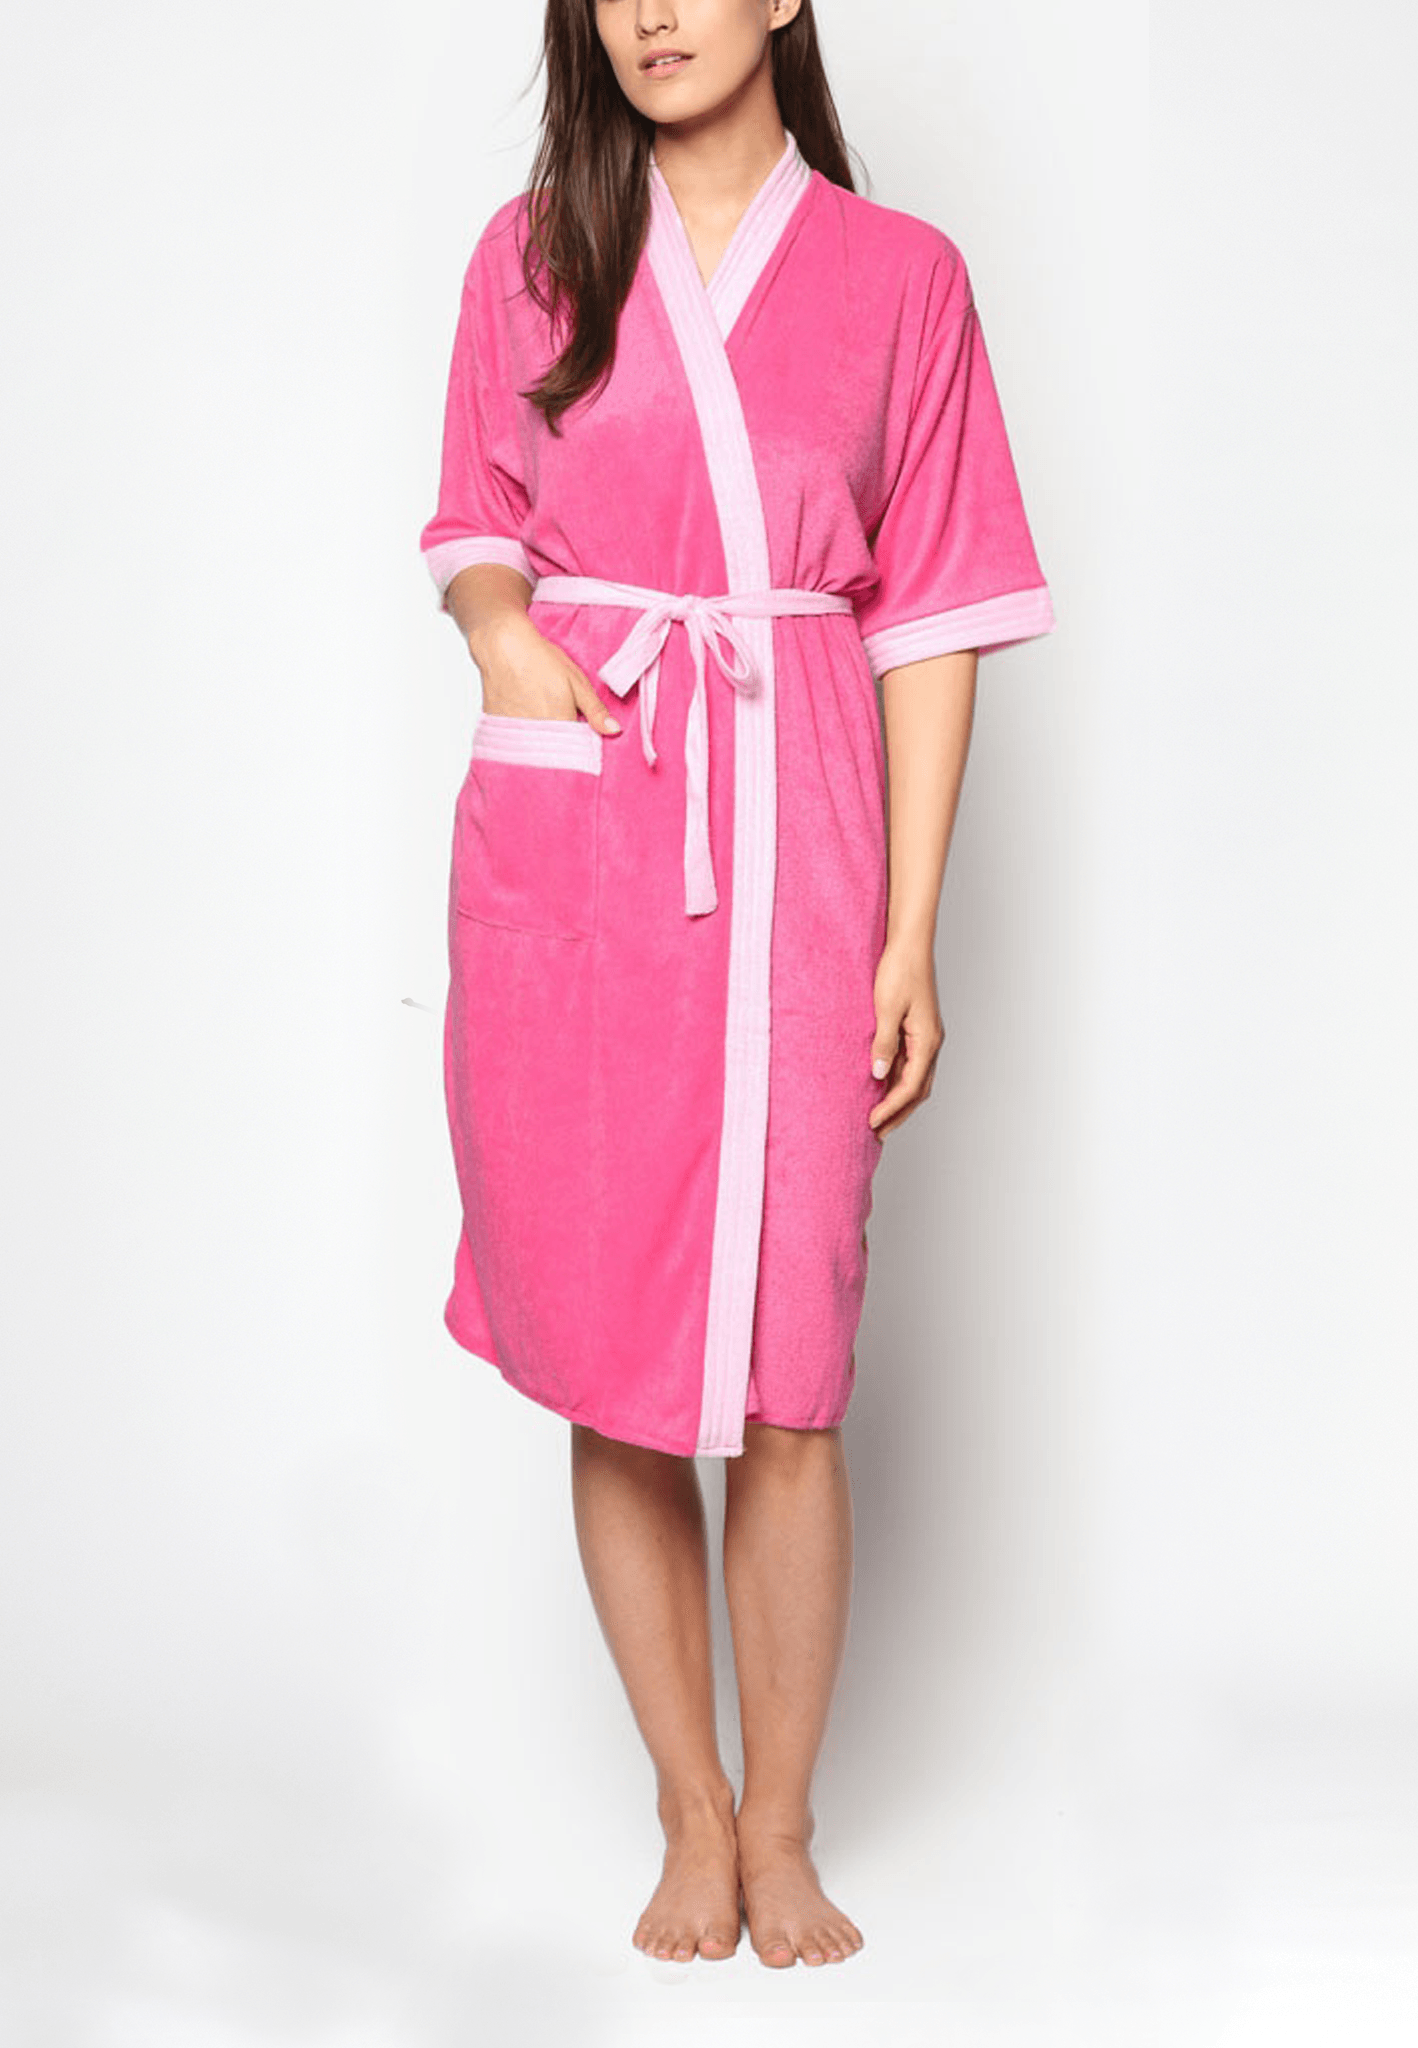 FUNFIT Swim Robe (Rose / Light Pink) | Free Size